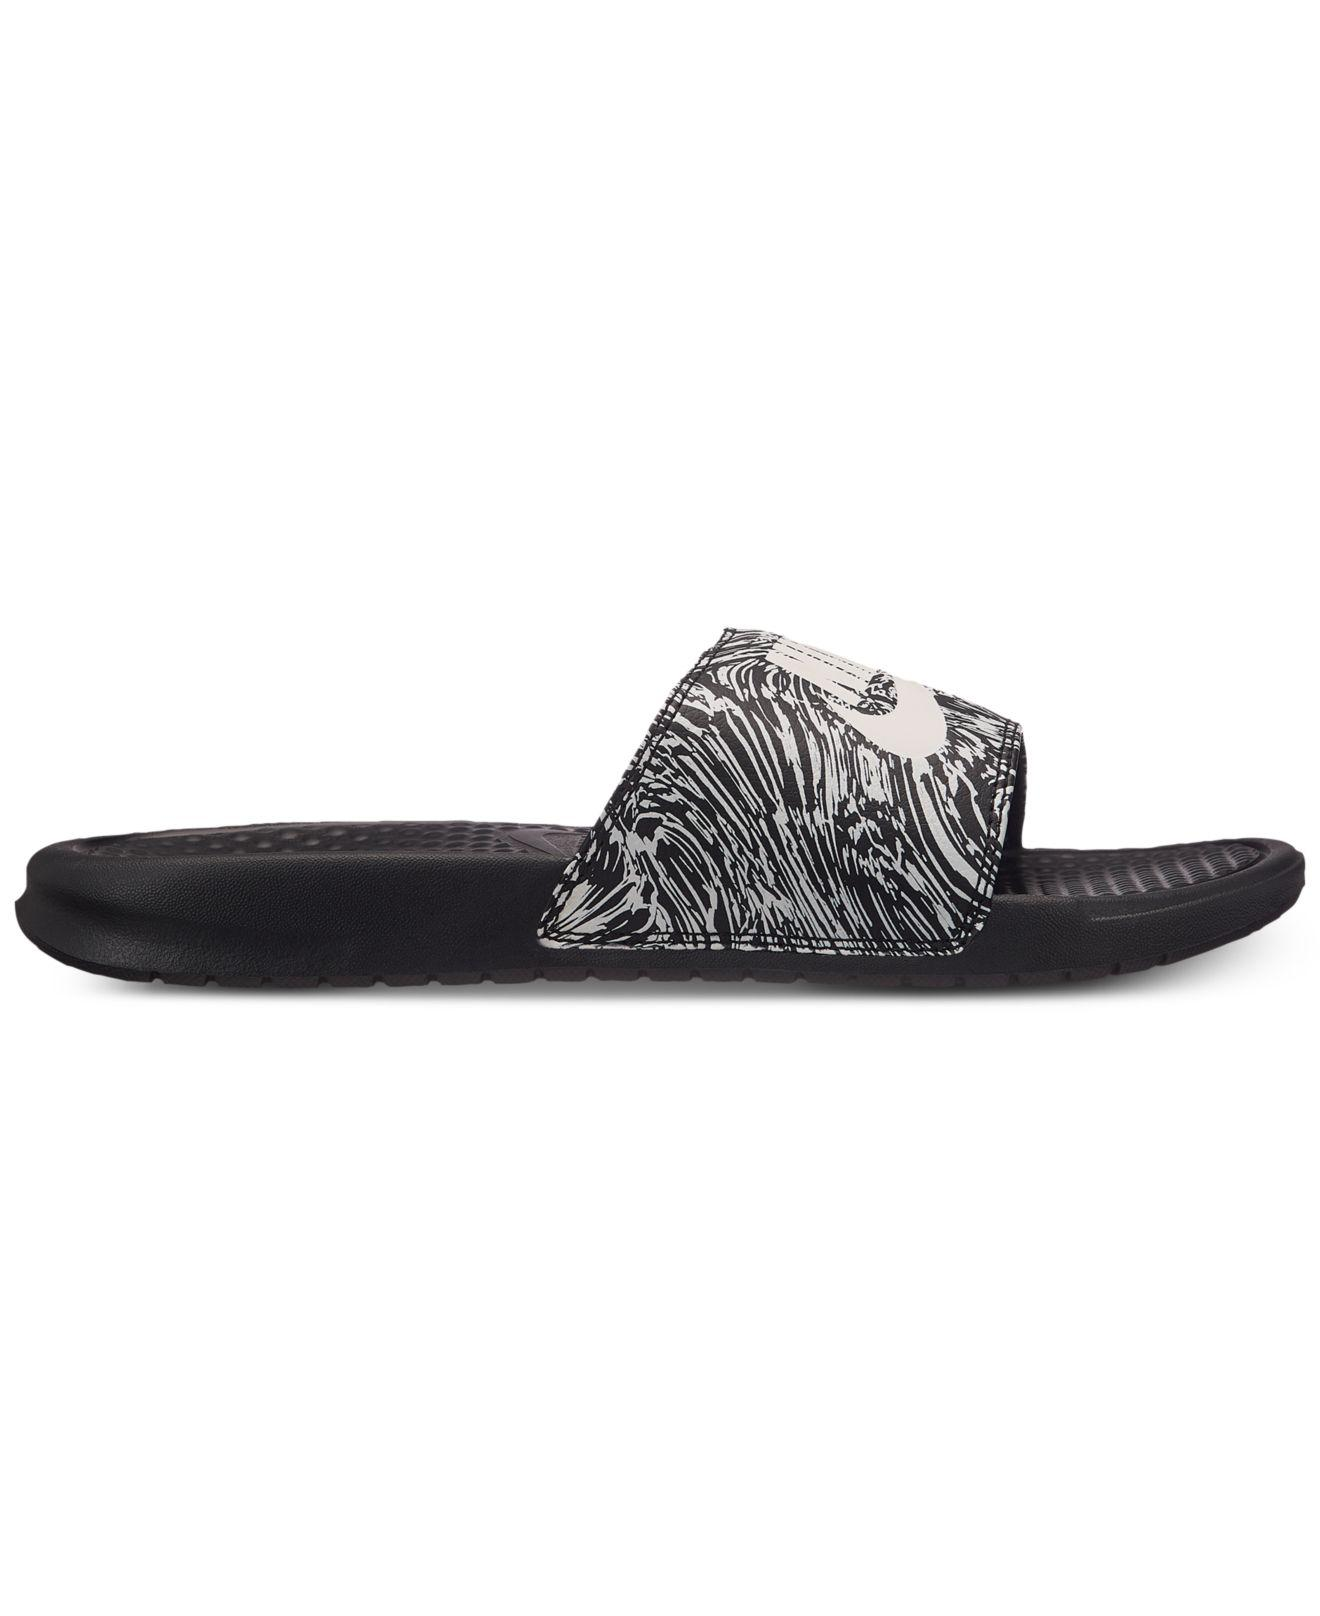 Nike Benassi JDI Printed Faux Leather Slides discount shopping online explore cheap online clearance wide range of bZJwh